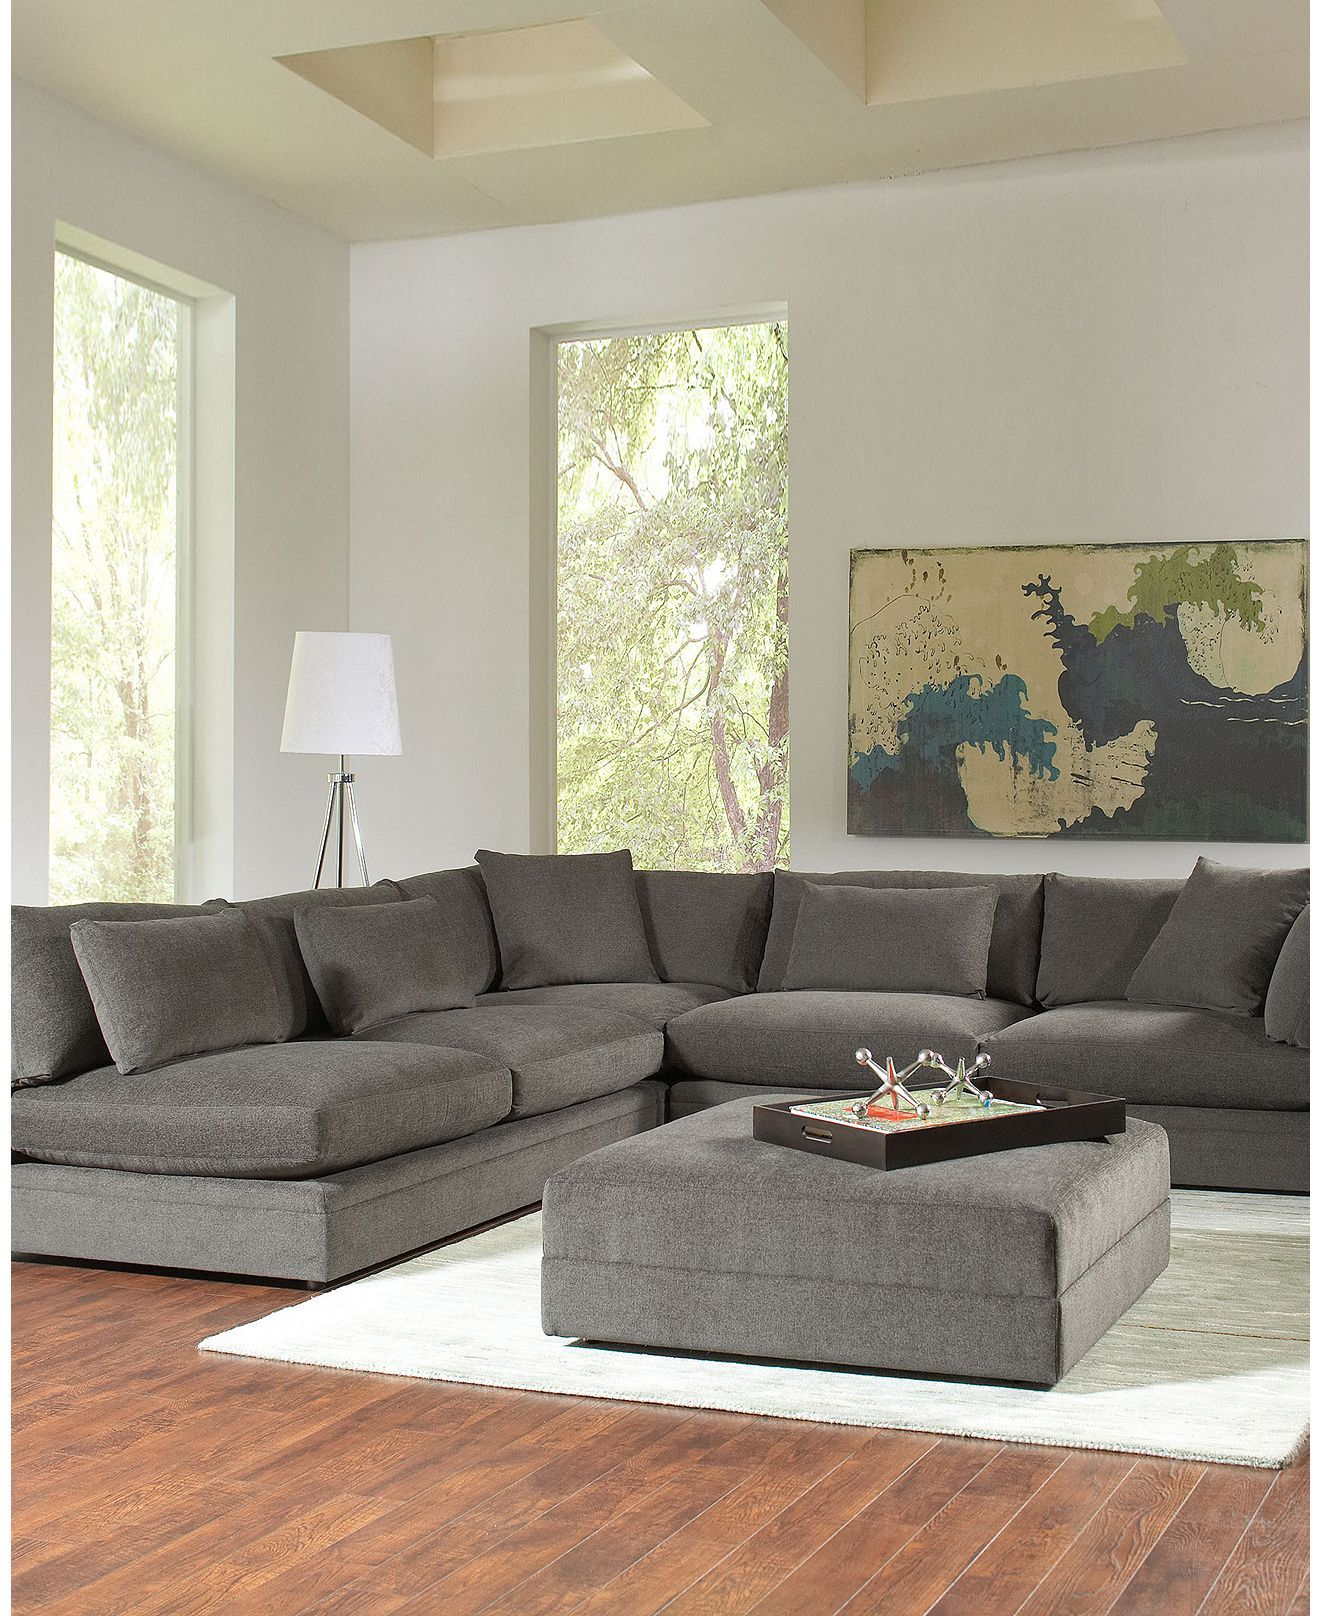 macy s orange sectional sofa plum leather dana living room furniture sets and pieces sectionals